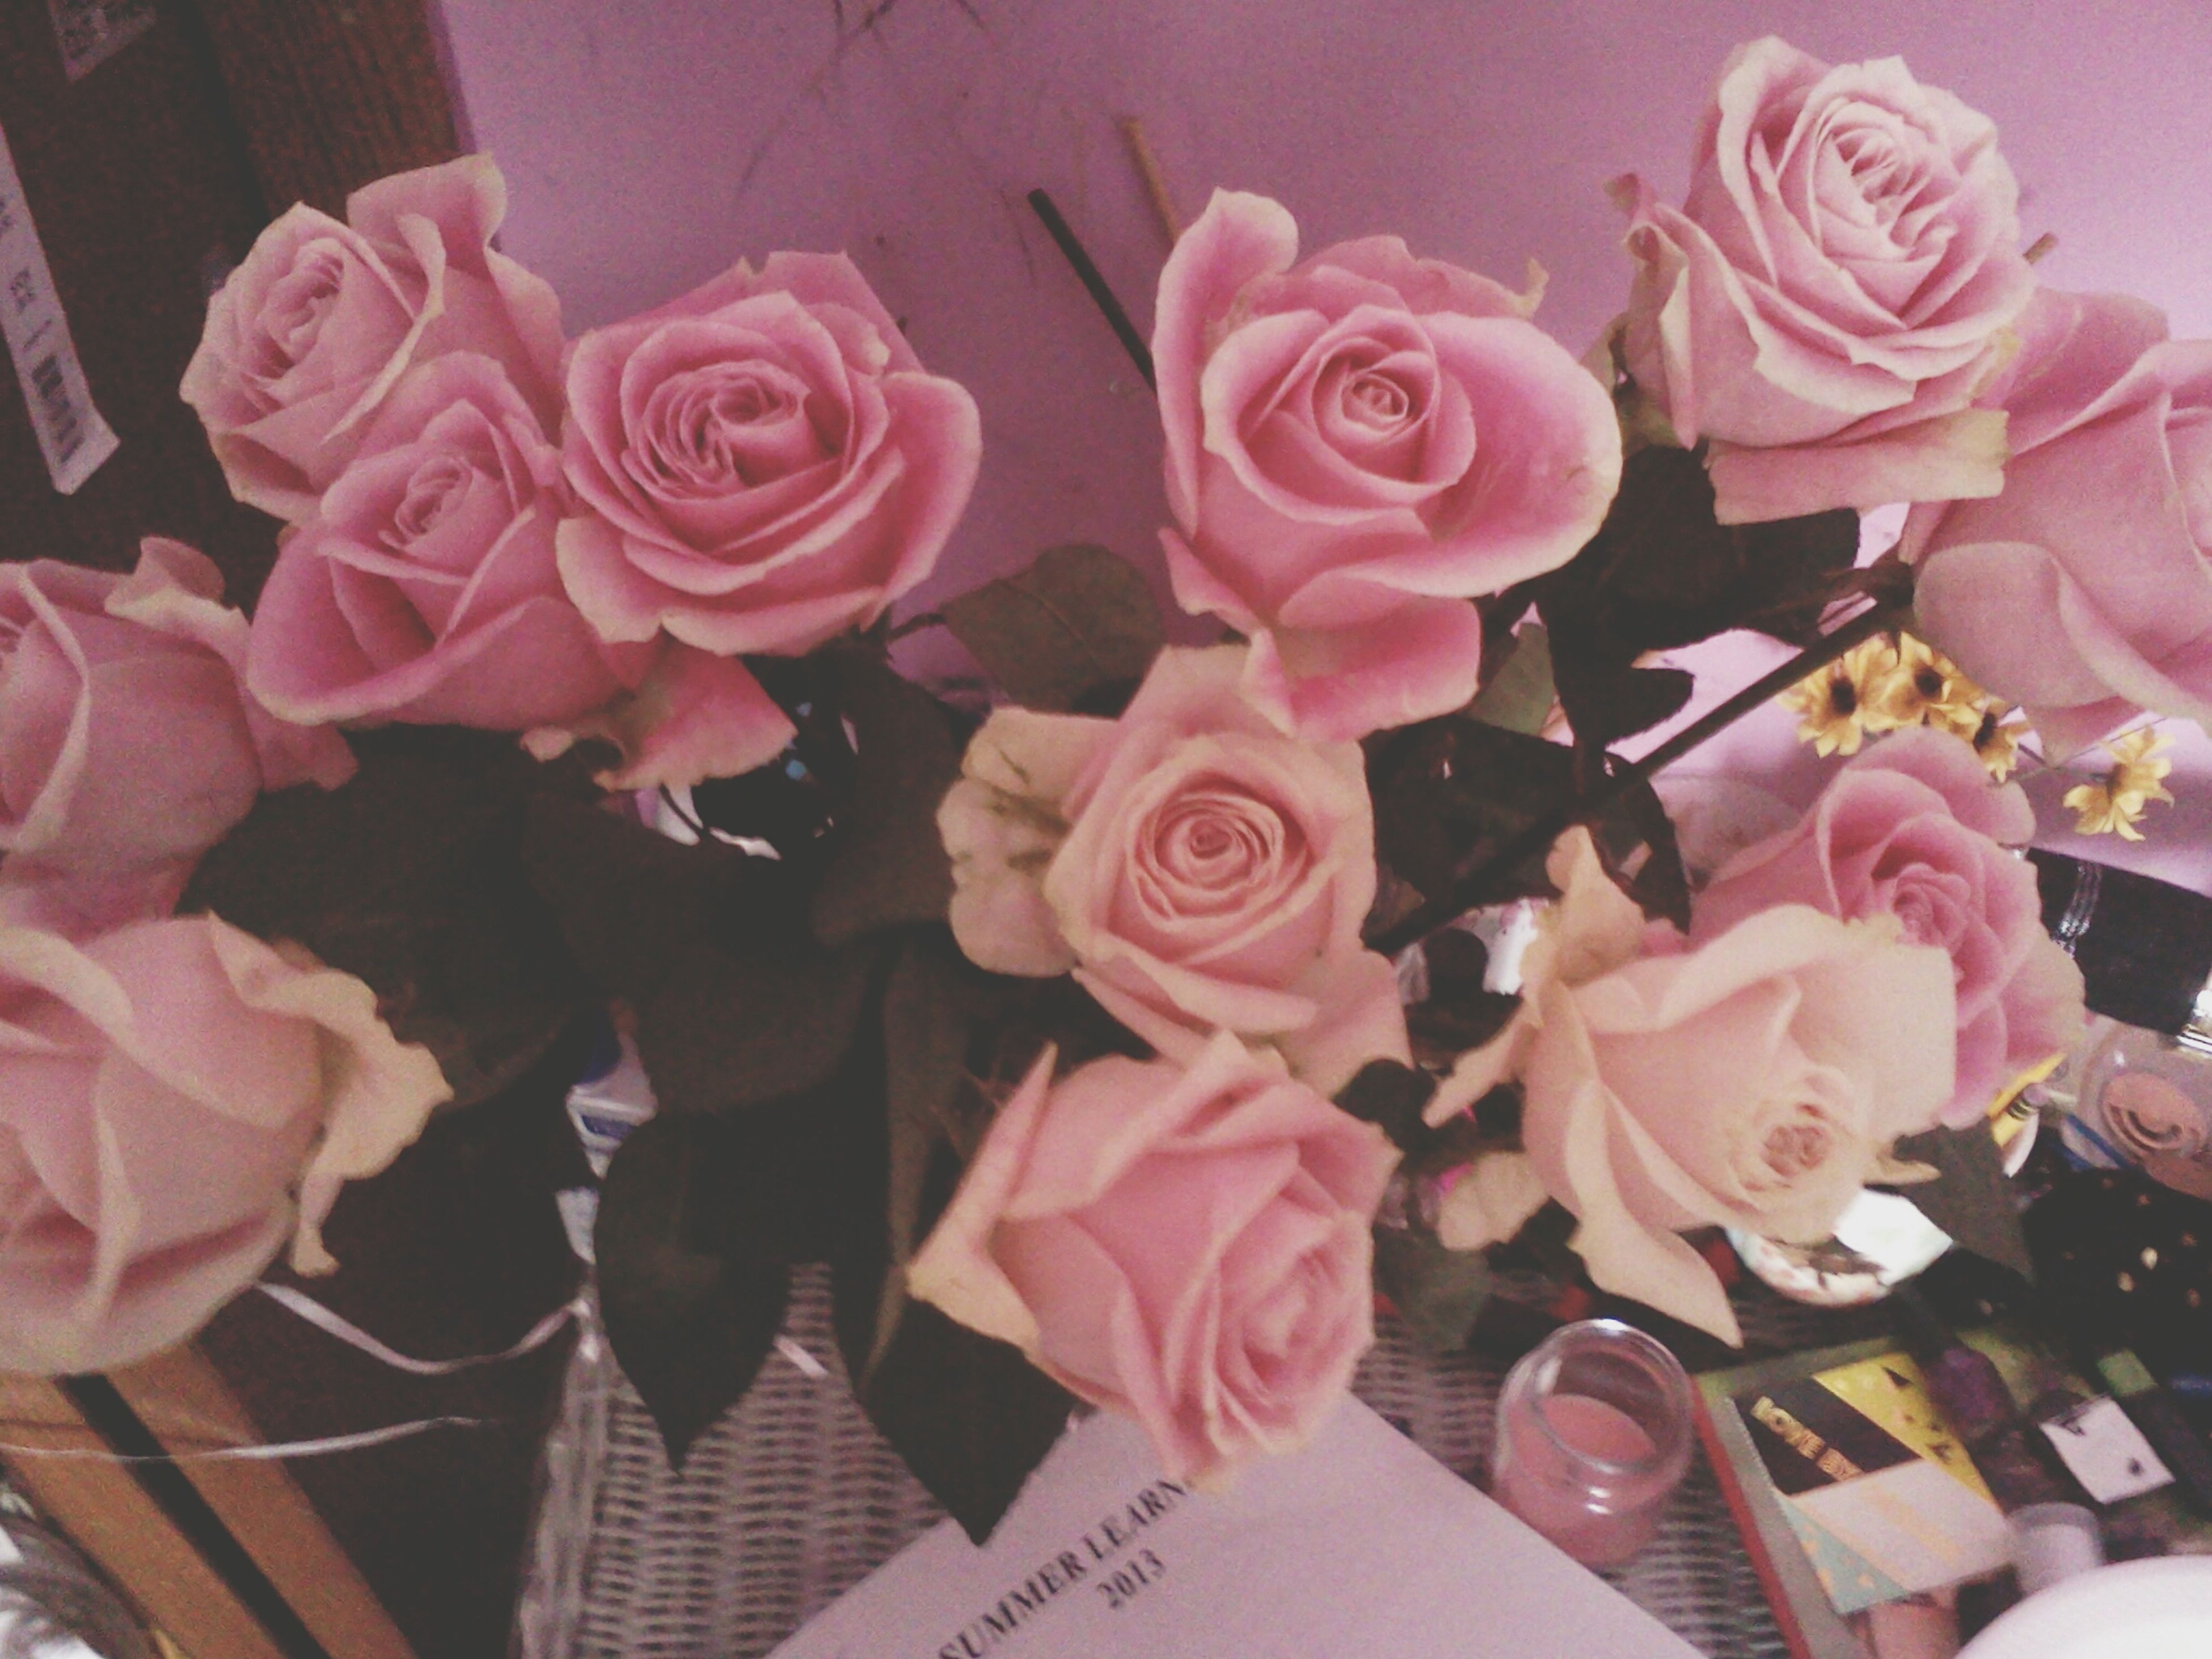 flower, petal, indoors, freshness, pink color, fragility, rose - flower, flower head, bouquet, beauty in nature, close-up, vase, high angle view, bunch of flowers, rose, nature, pink, flower arrangement, no people, blooming